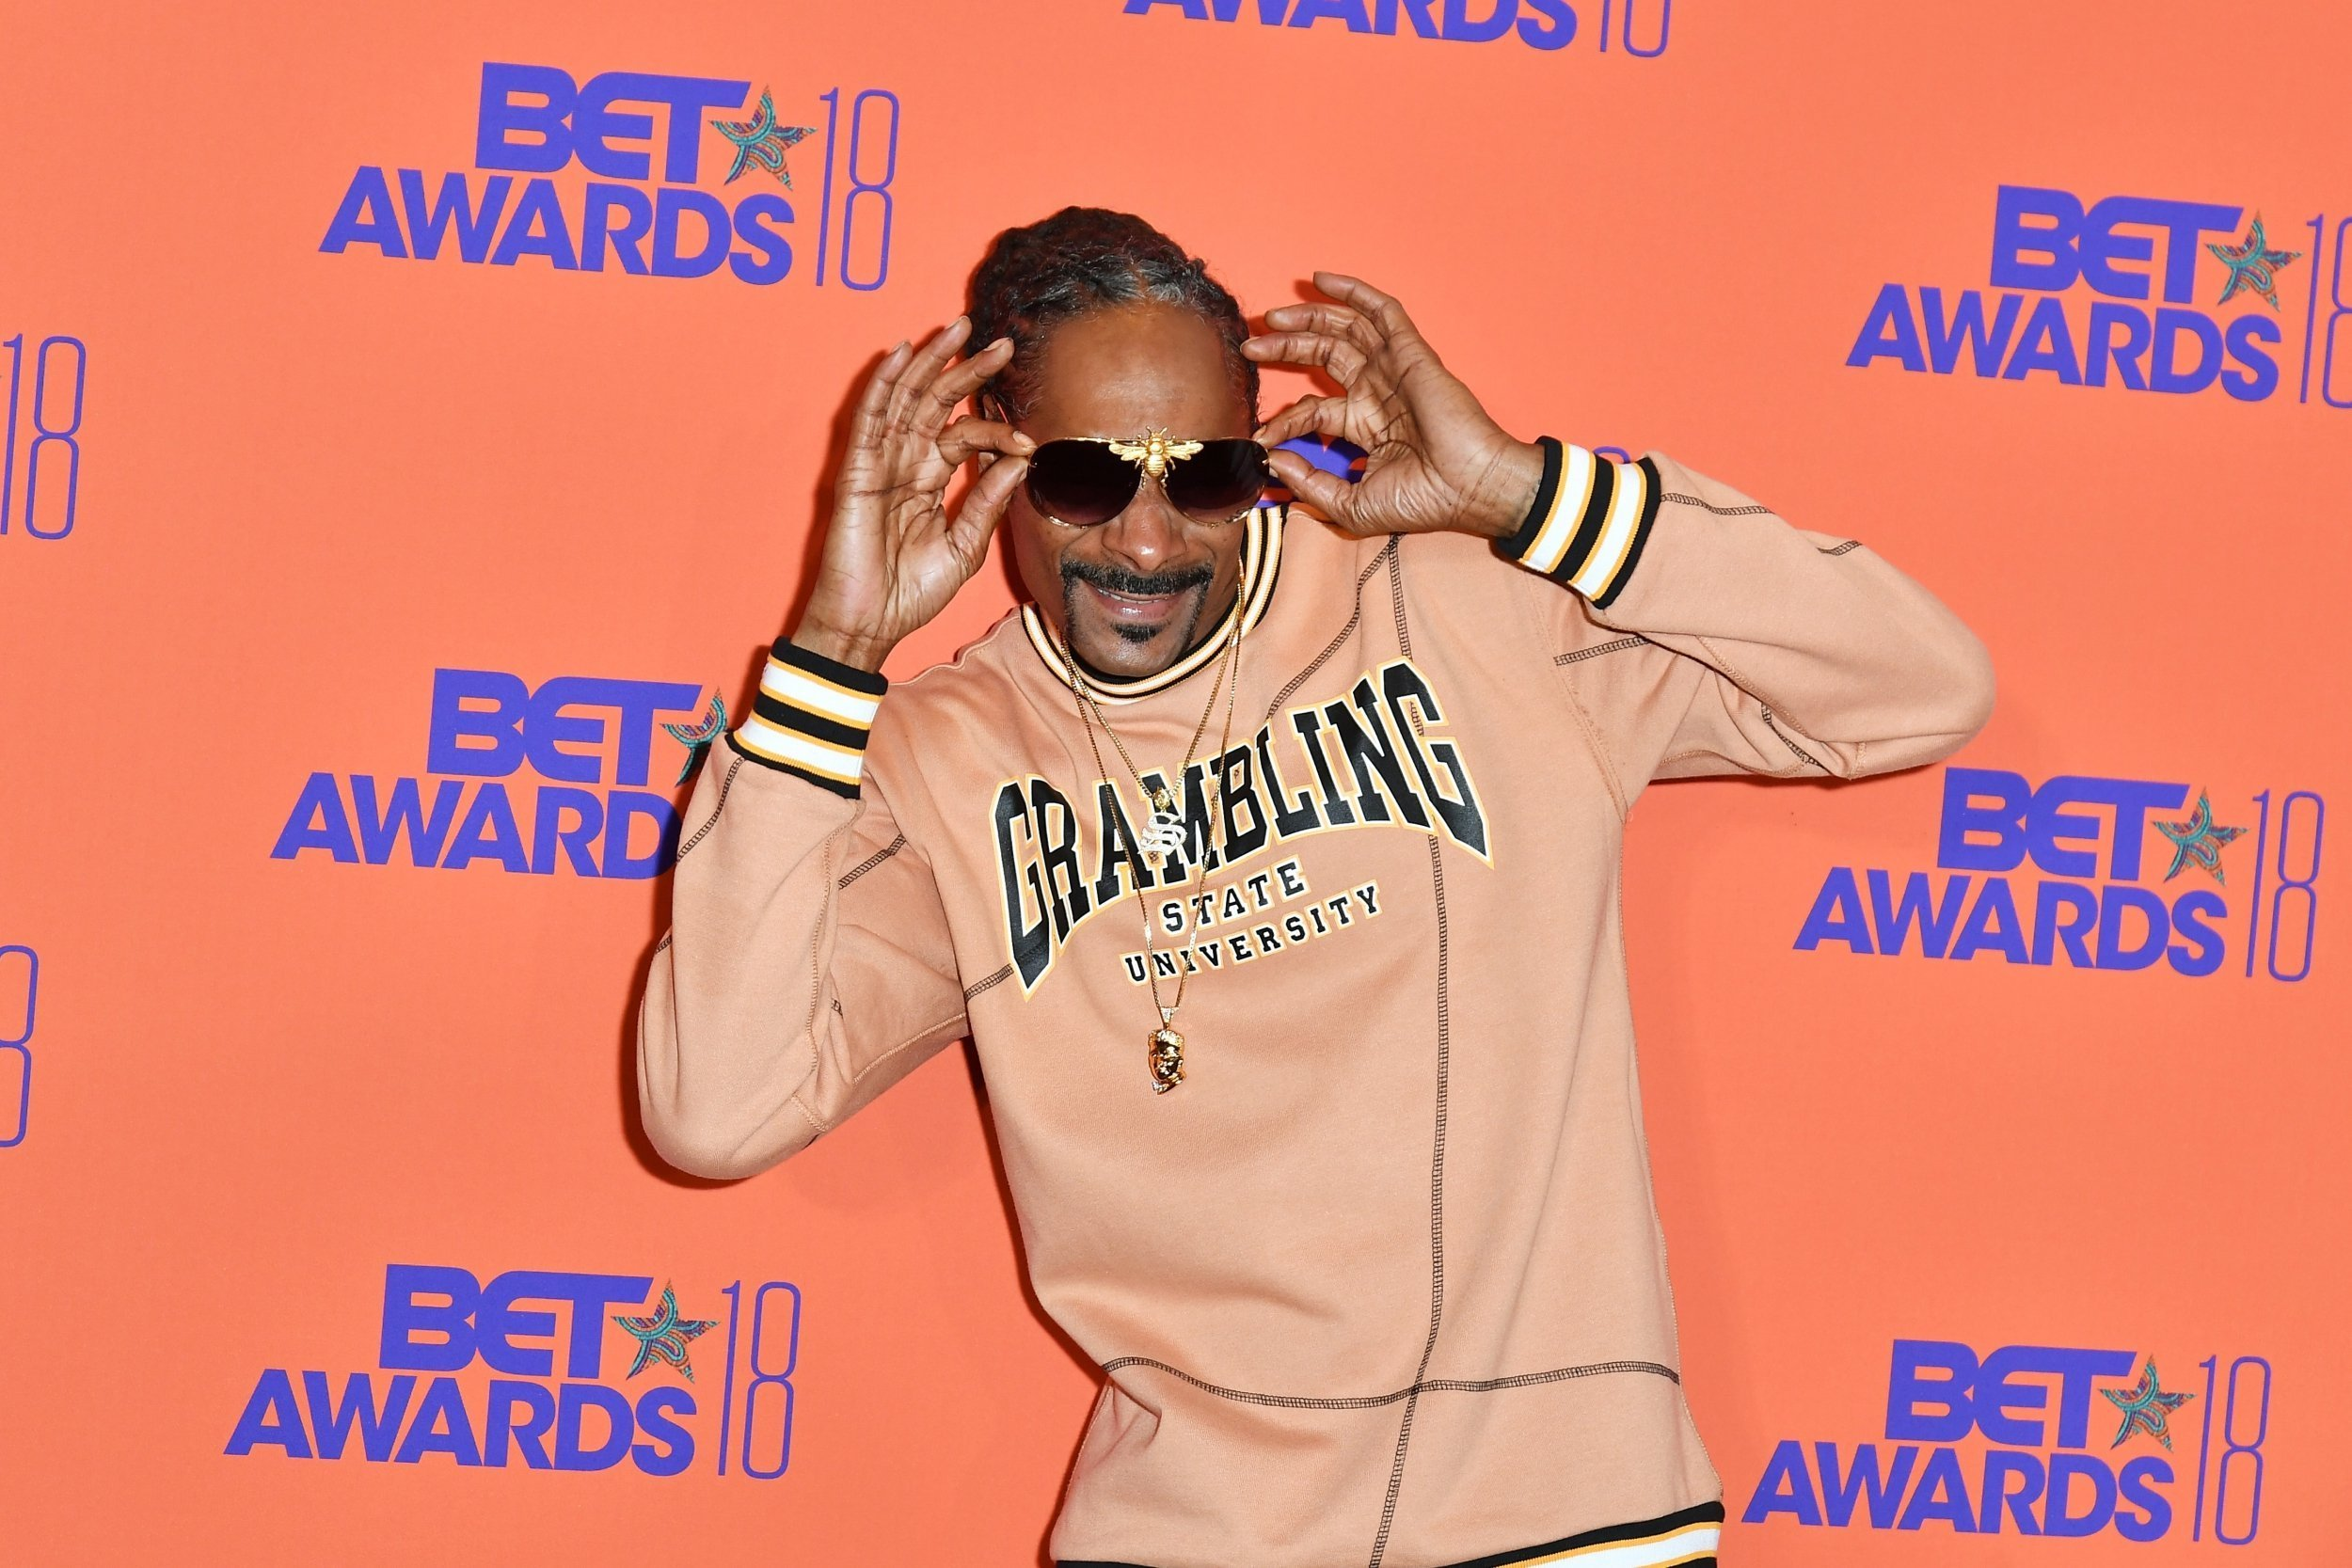 Snoop Dogg invests $10 million into British weed company with Patrick Stewart